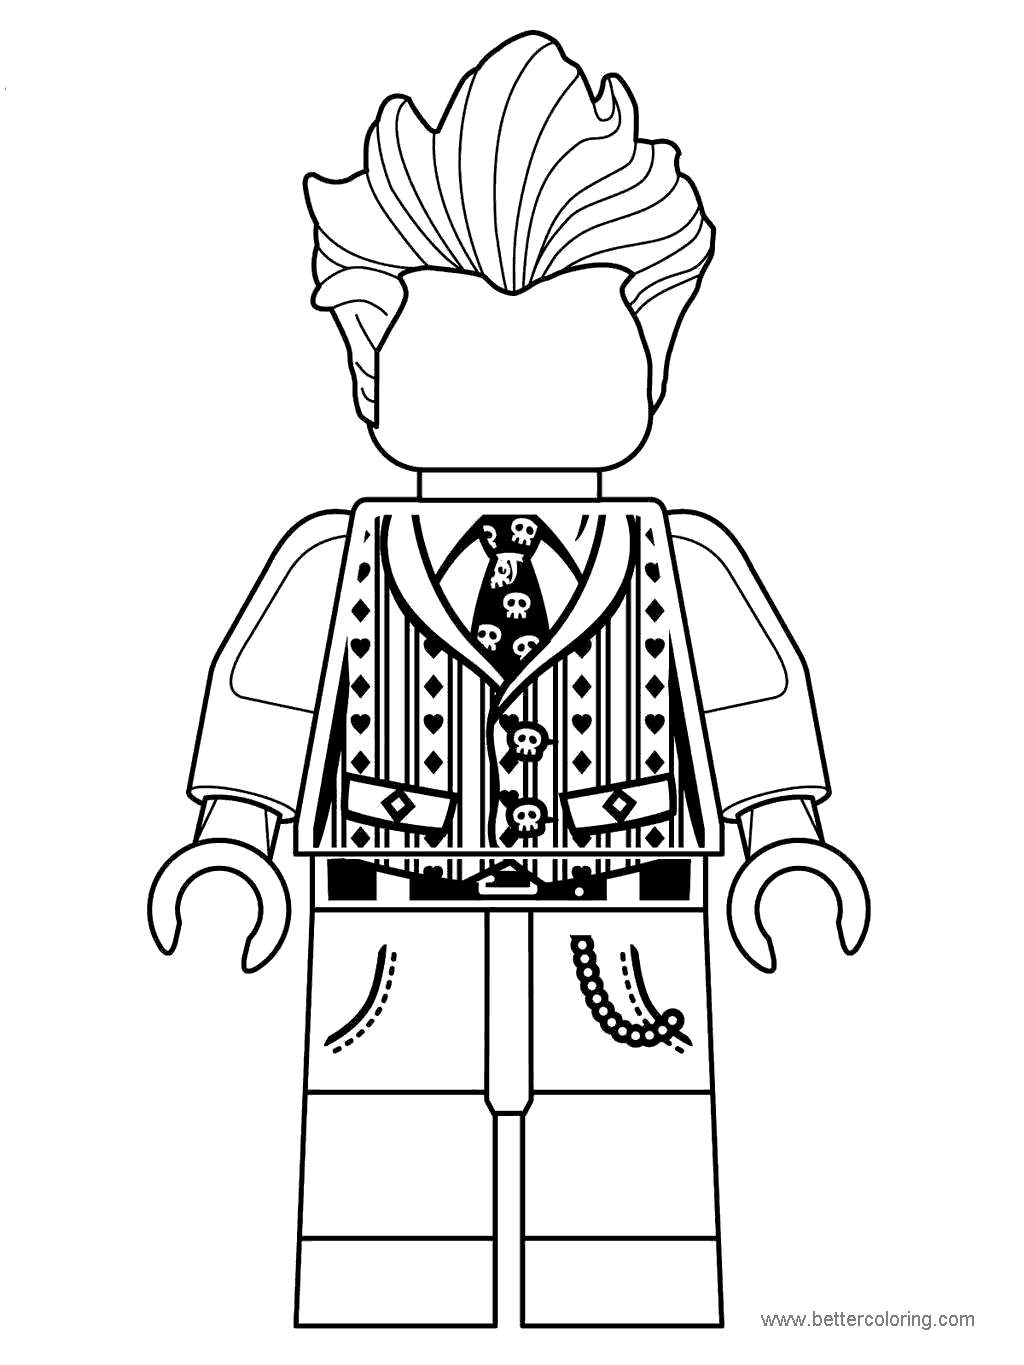 lego movie coloring pages lego movie coloring pages best coloring pages for kids coloring movie lego pages